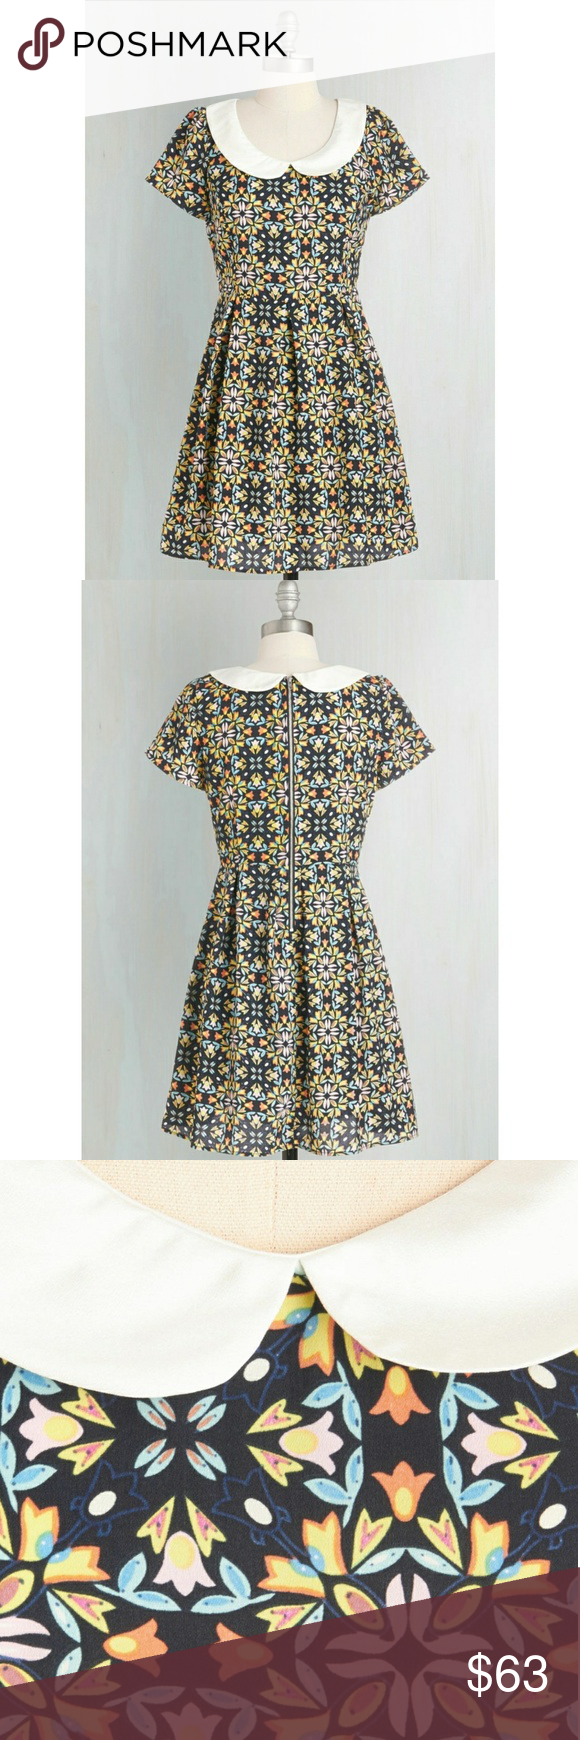 Modcloth, Sunny Girl Sz L Kaleidoscope to See You New without tags attached and in perfect condition. Modcloth Dresses